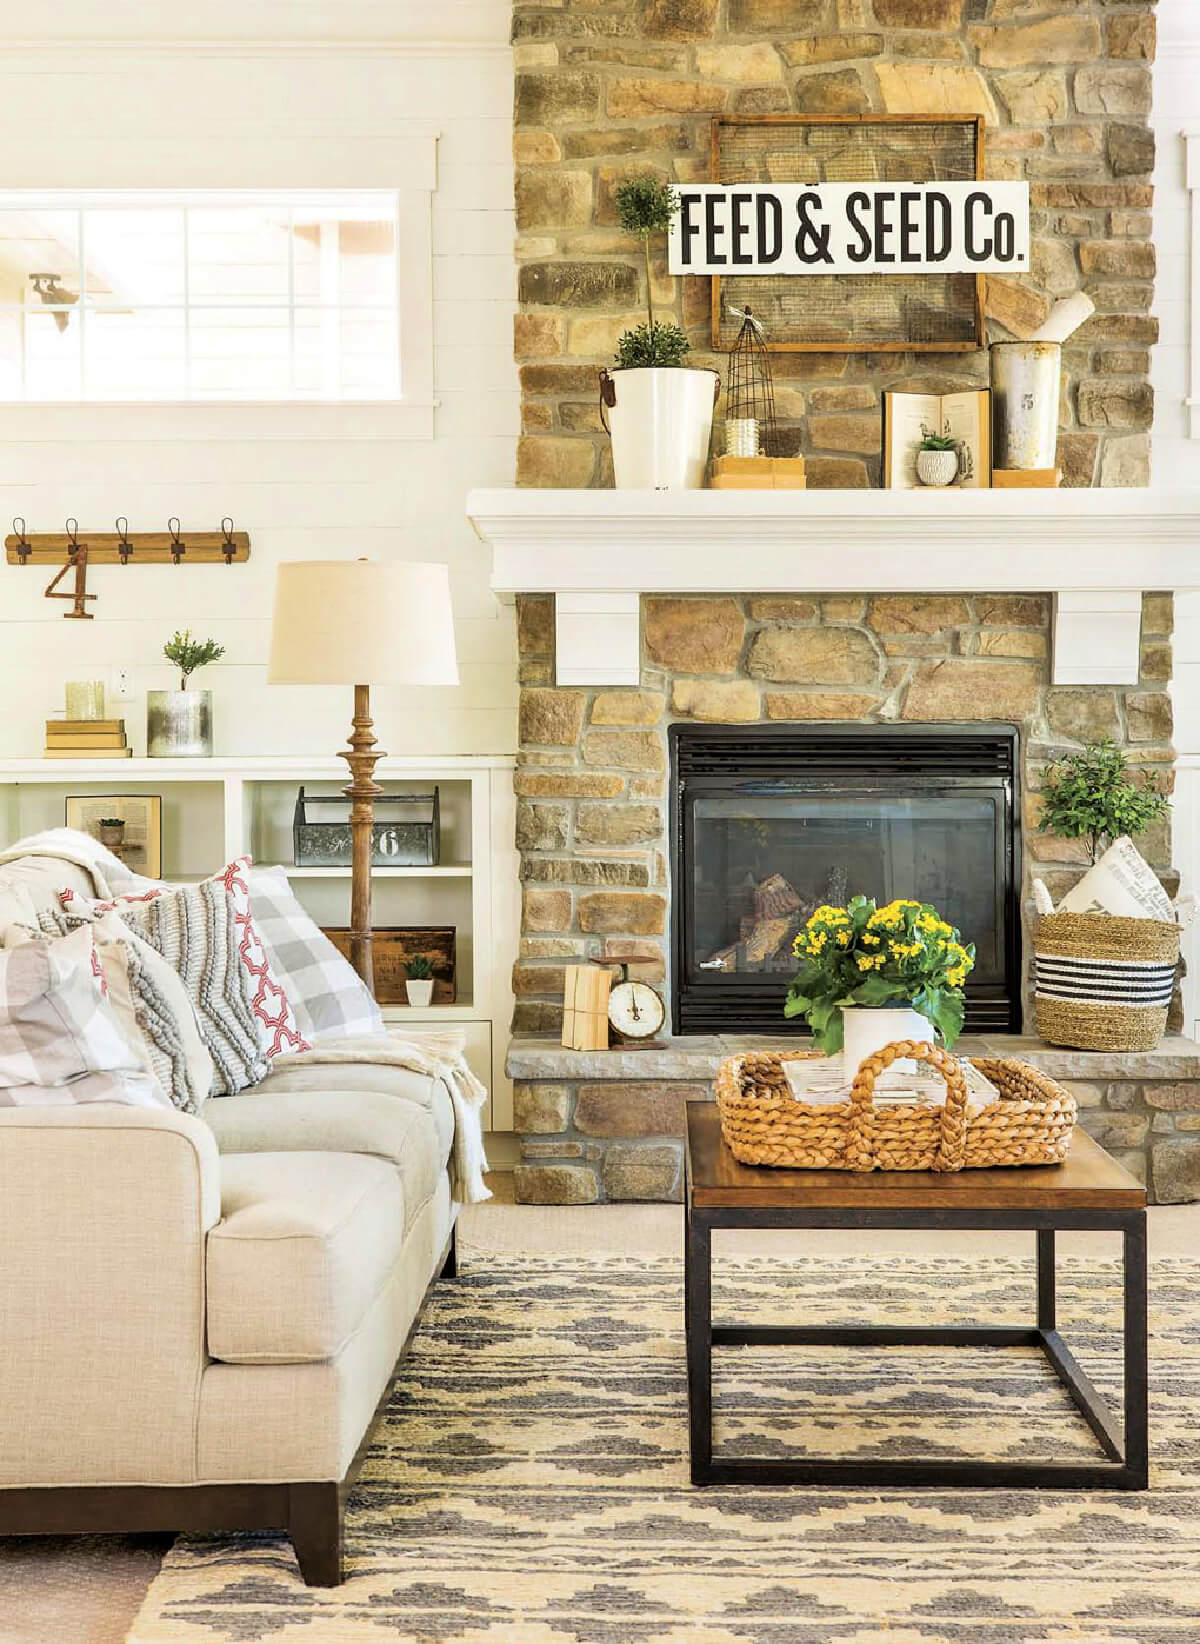 Farmhouse + Cottage Style Decorating Mixed Together